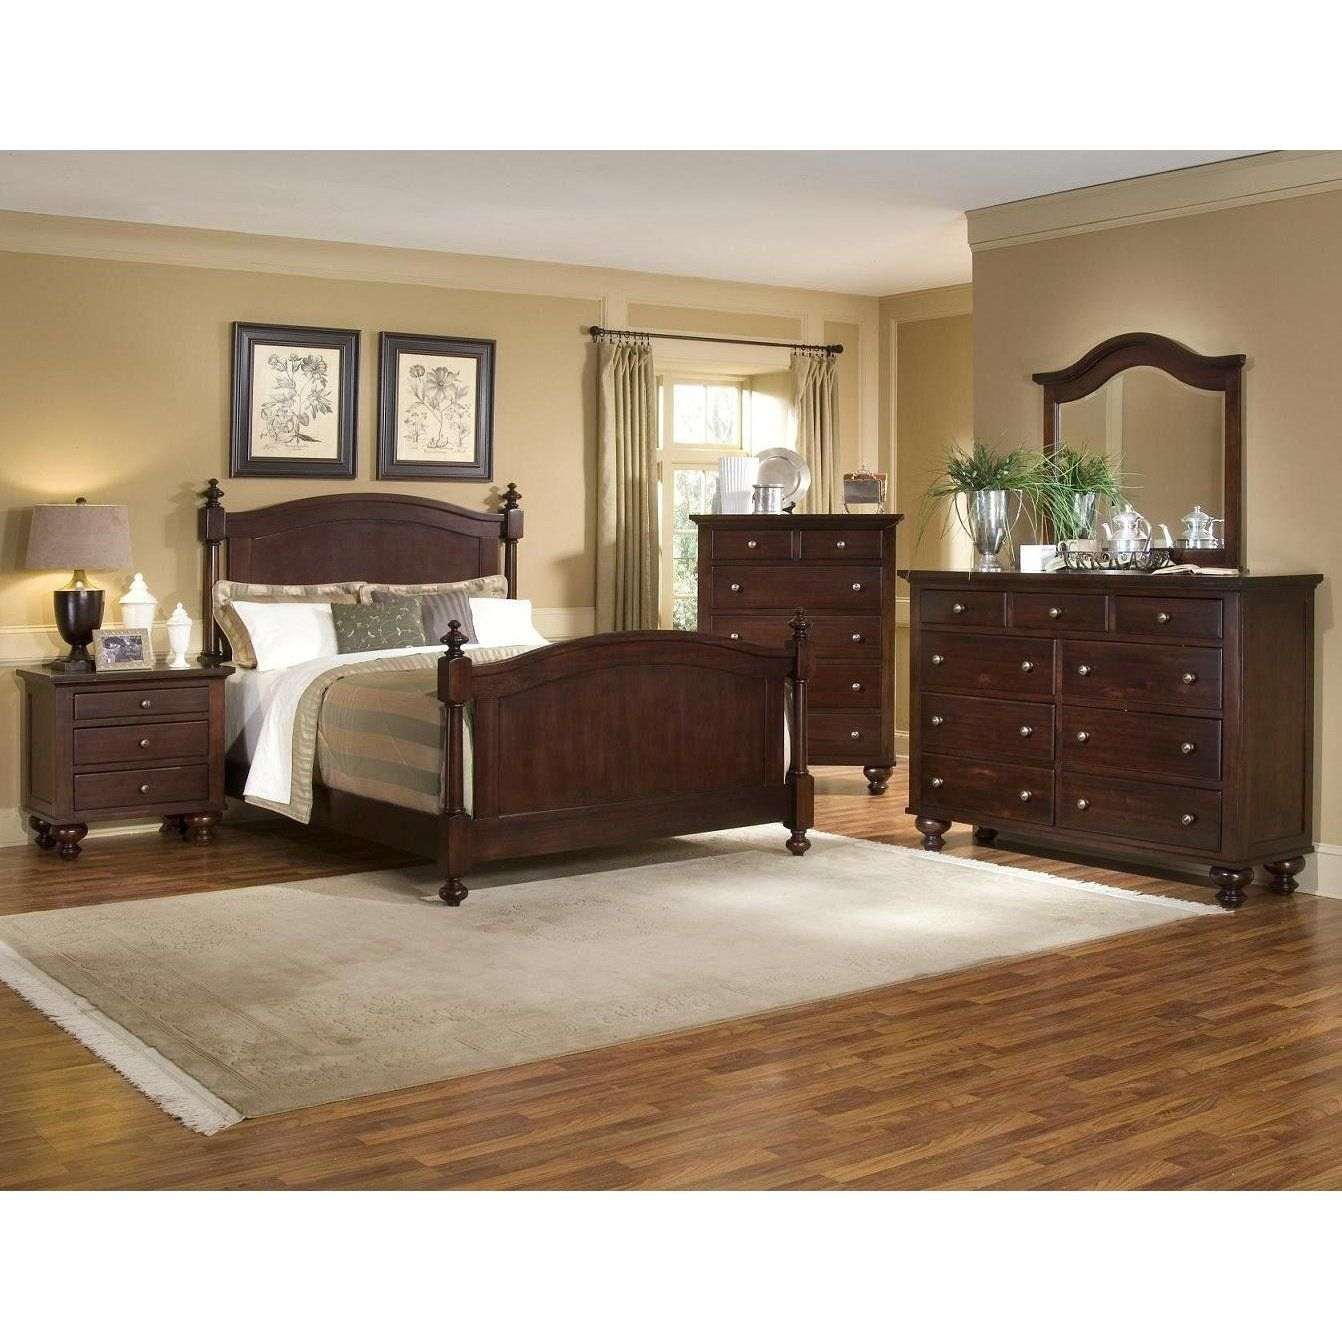 Fabulous Bedroom Furniture Sets Fully Assembled Download Free Architecture Designs Rallybritishbridgeorg